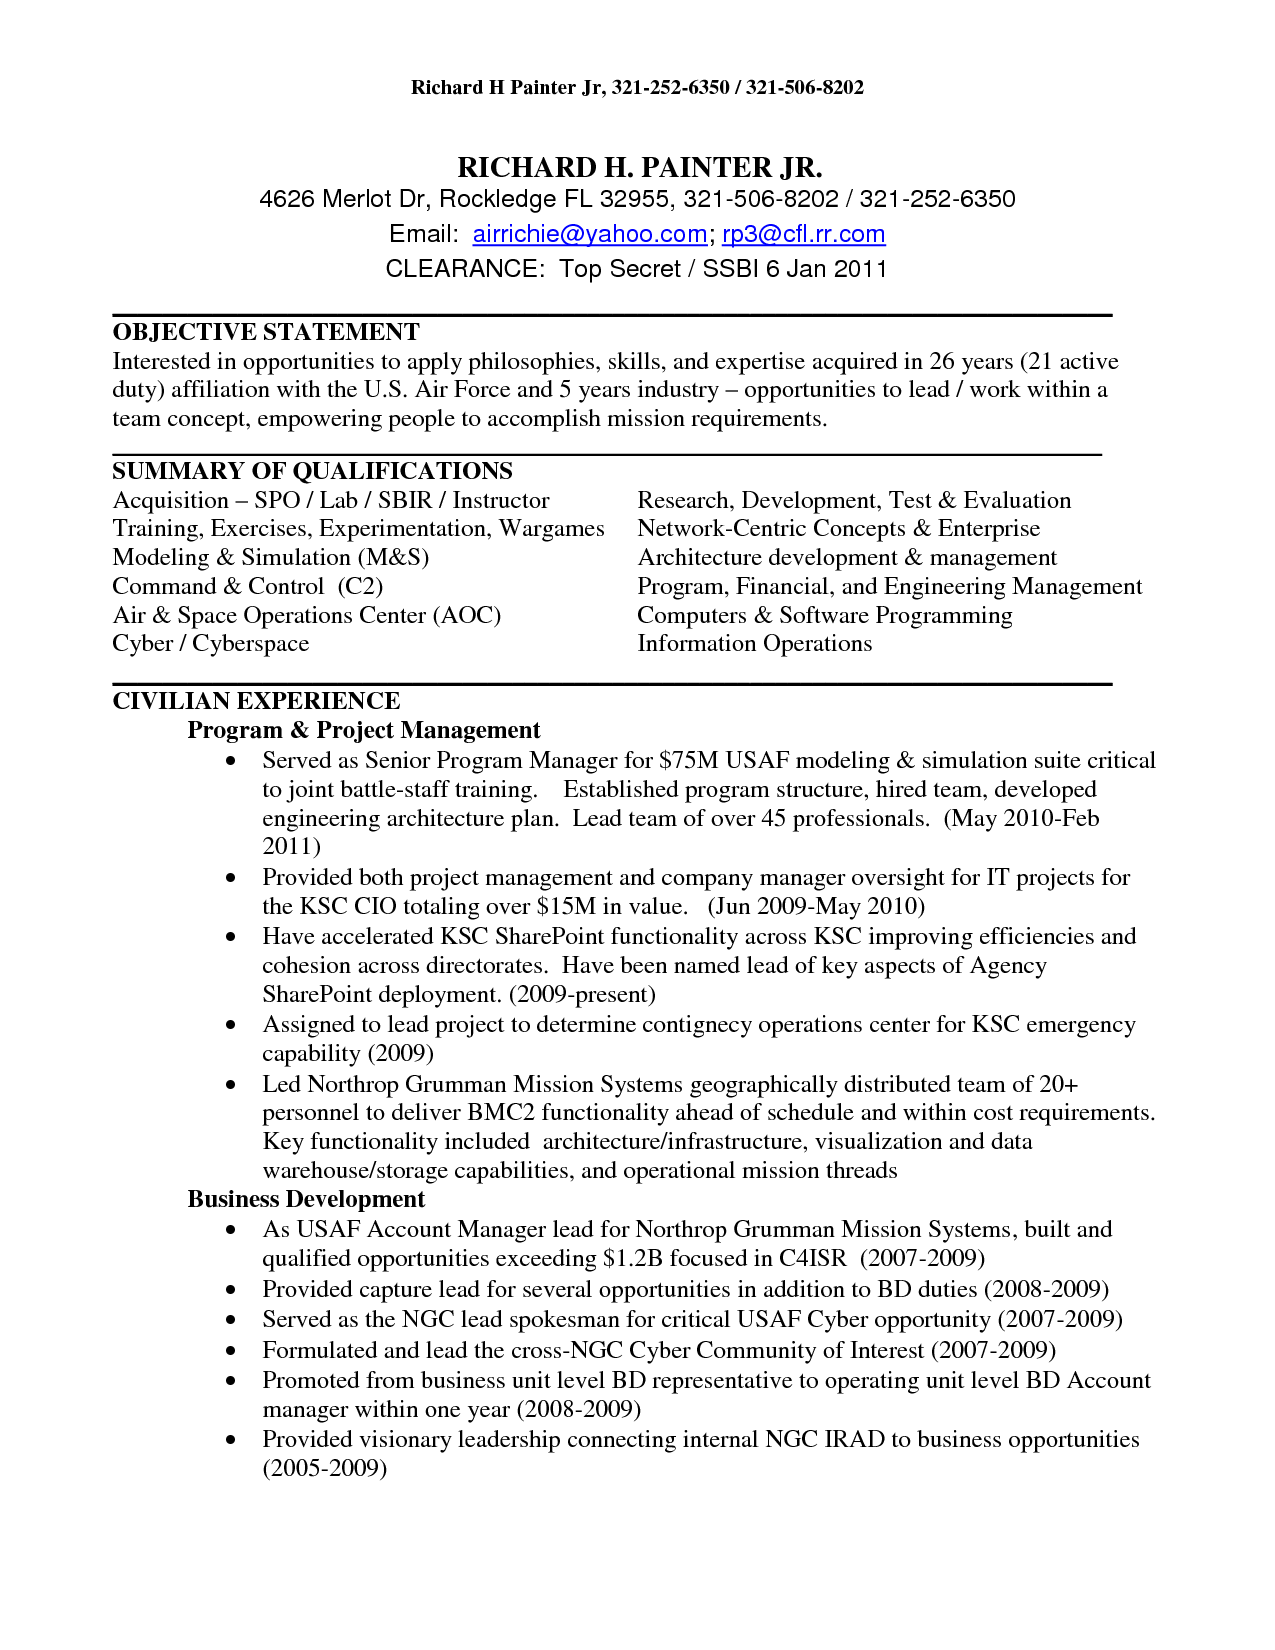 Resume Templates  Aircraft Mechanic Resume